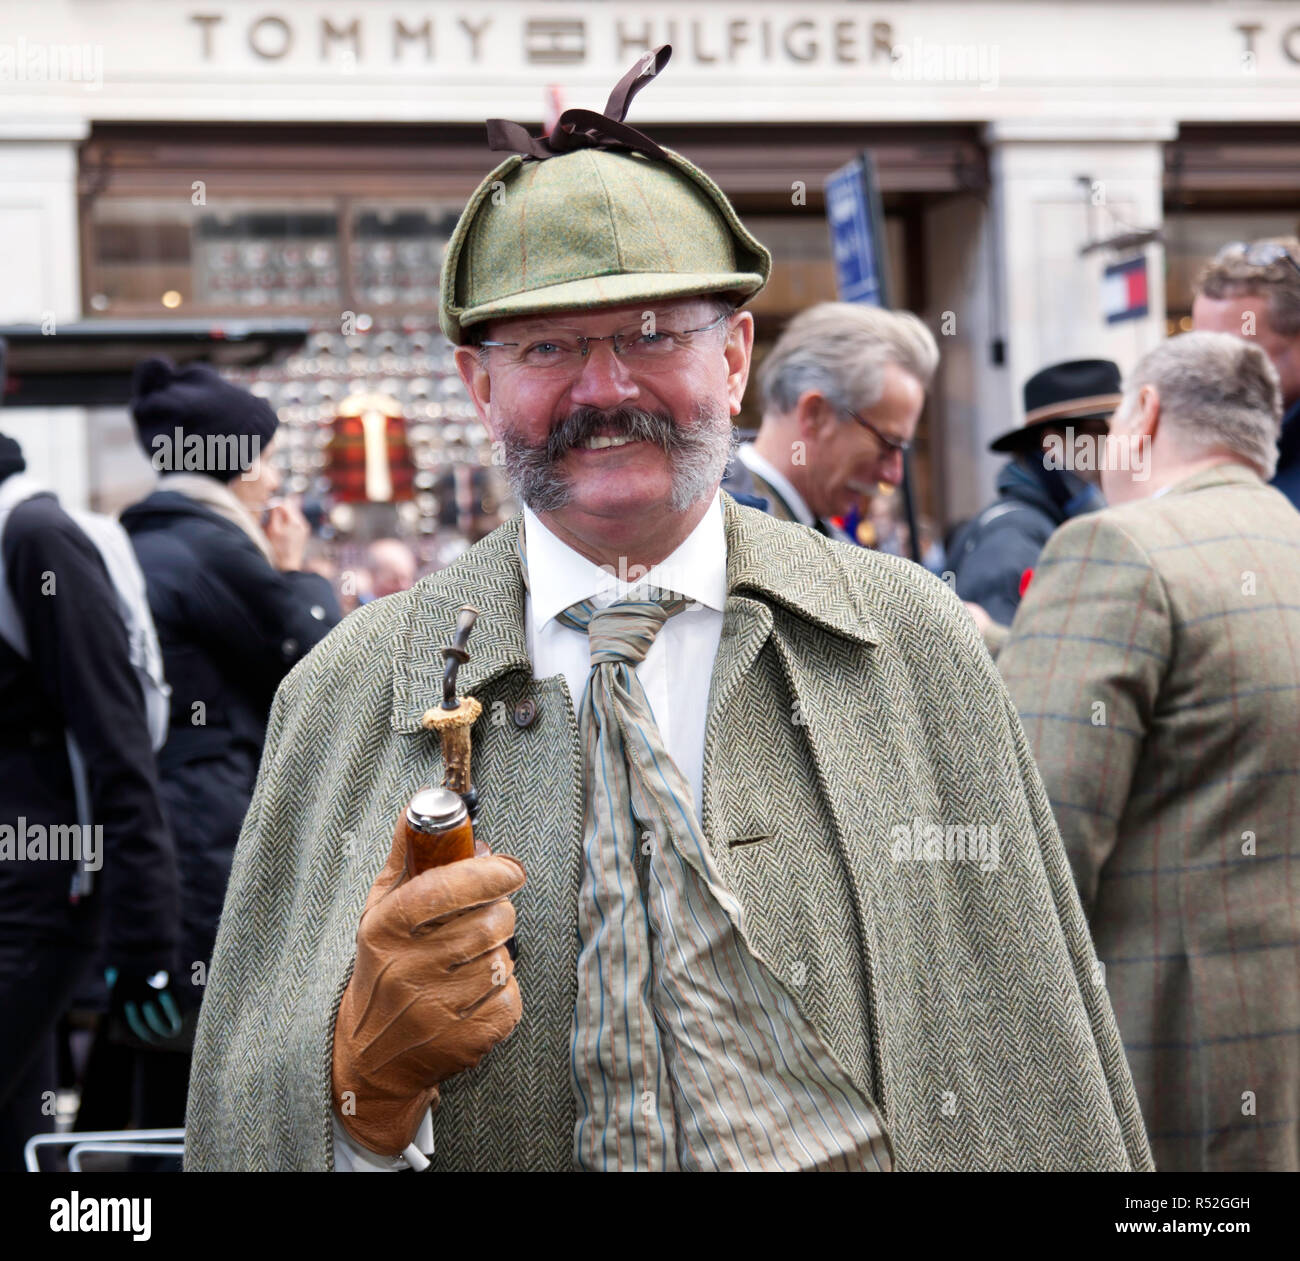 A smiling man in period costume poses near his vehicle, in the Veteran Car Zone of the 2018 Regents Street Motor Show Stock Photo